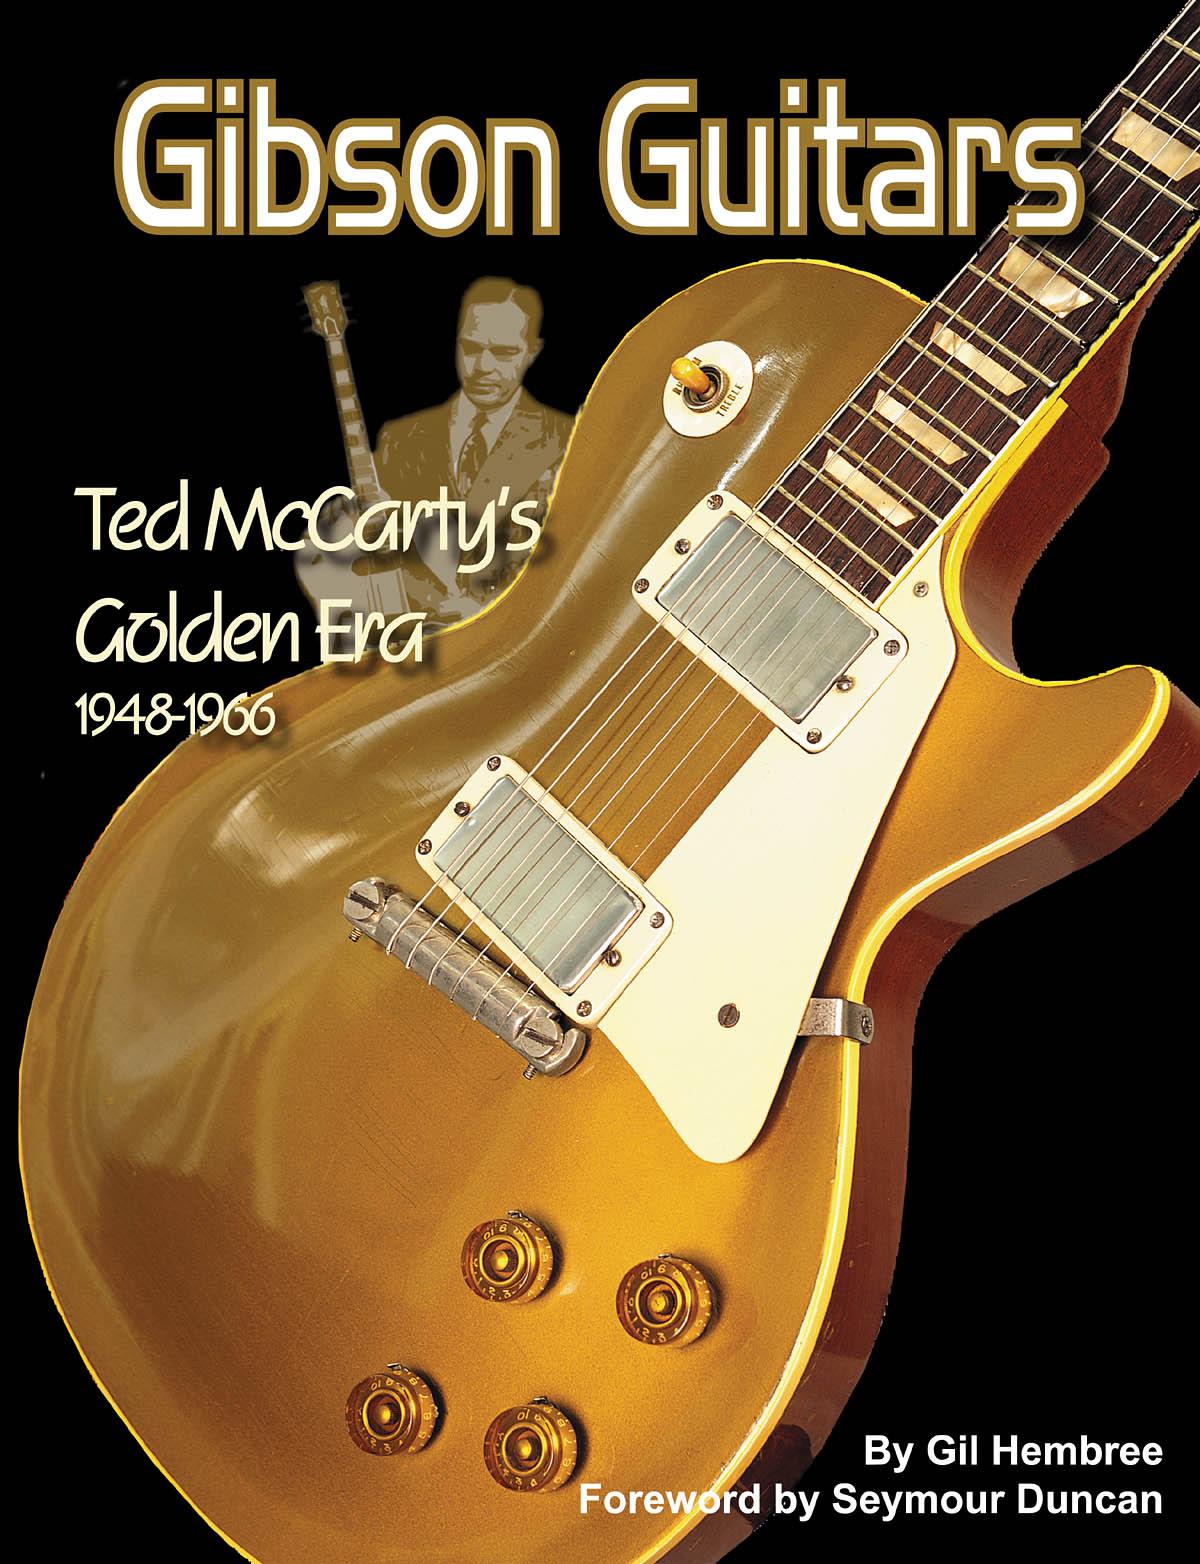 Gibson Guitars- Ted McCarty's Golden Era 1948-1966: Reference Books: Biography